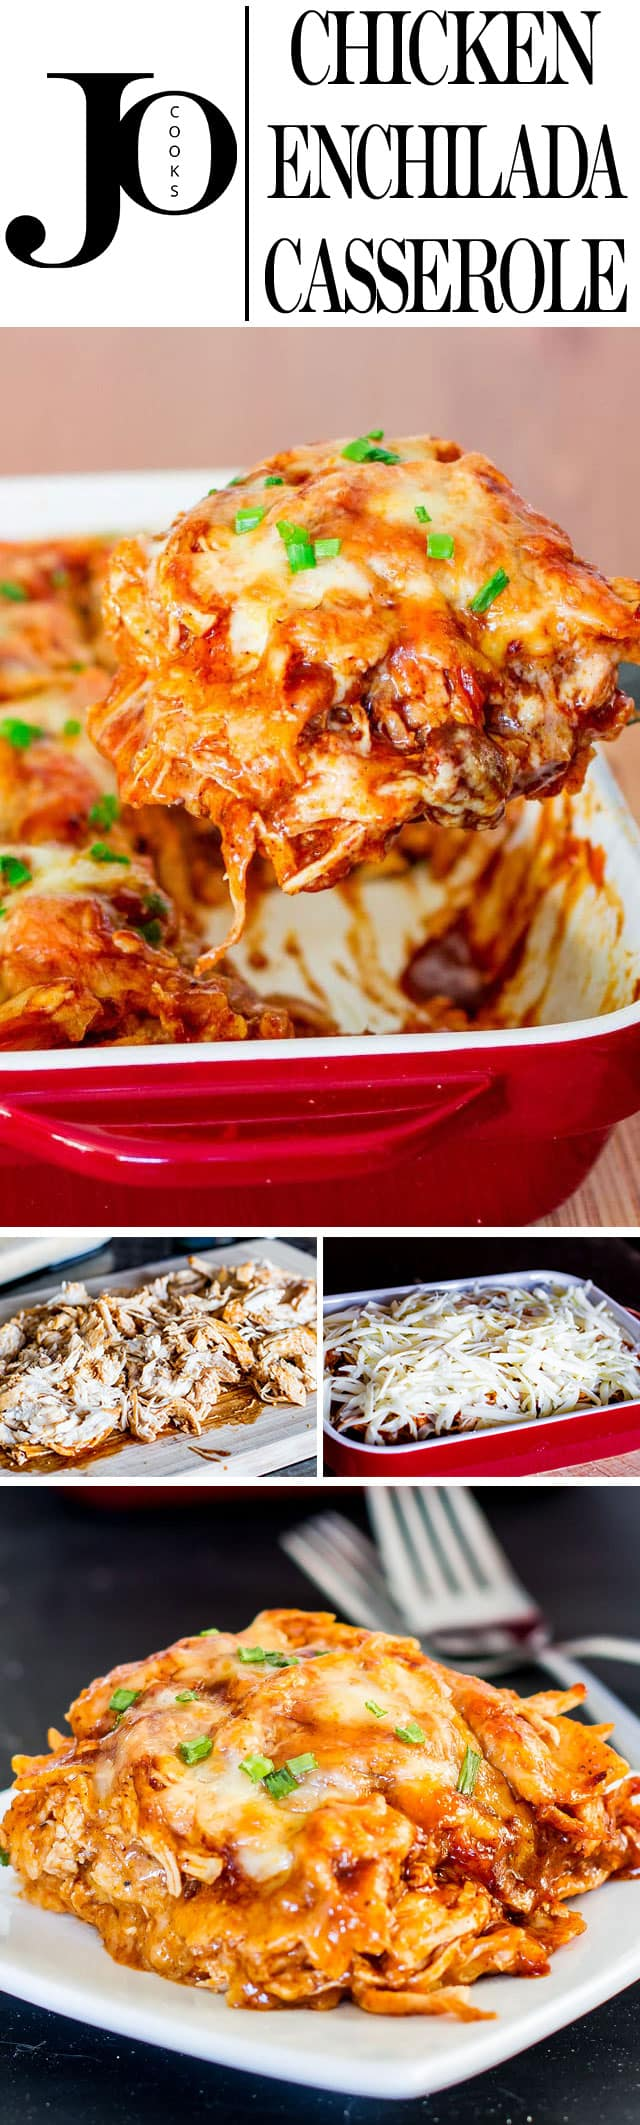 Easy Chicken Enchilada Casserole - 4 ingredients is all it takes to make this popular Mexican dish. It's cheesy, it's spicy, it's sinfully delicious. #chickenenchilada #casserole